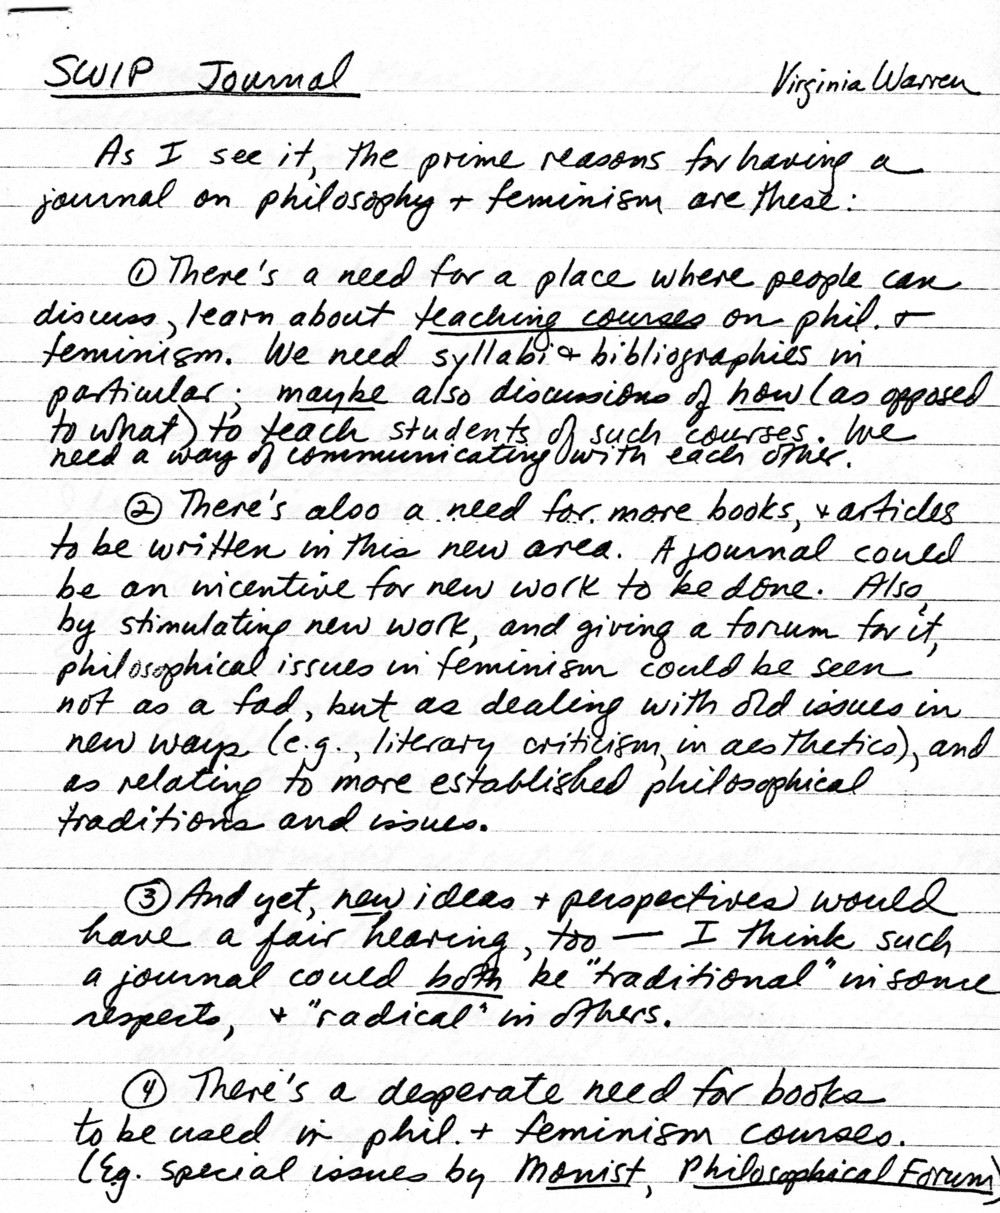 Letter from Virginia Warren writing about a possible SWIP journal, mid 1970's. Society for Women in Philosophy Collection, Feminist Theory Archive, Brown University